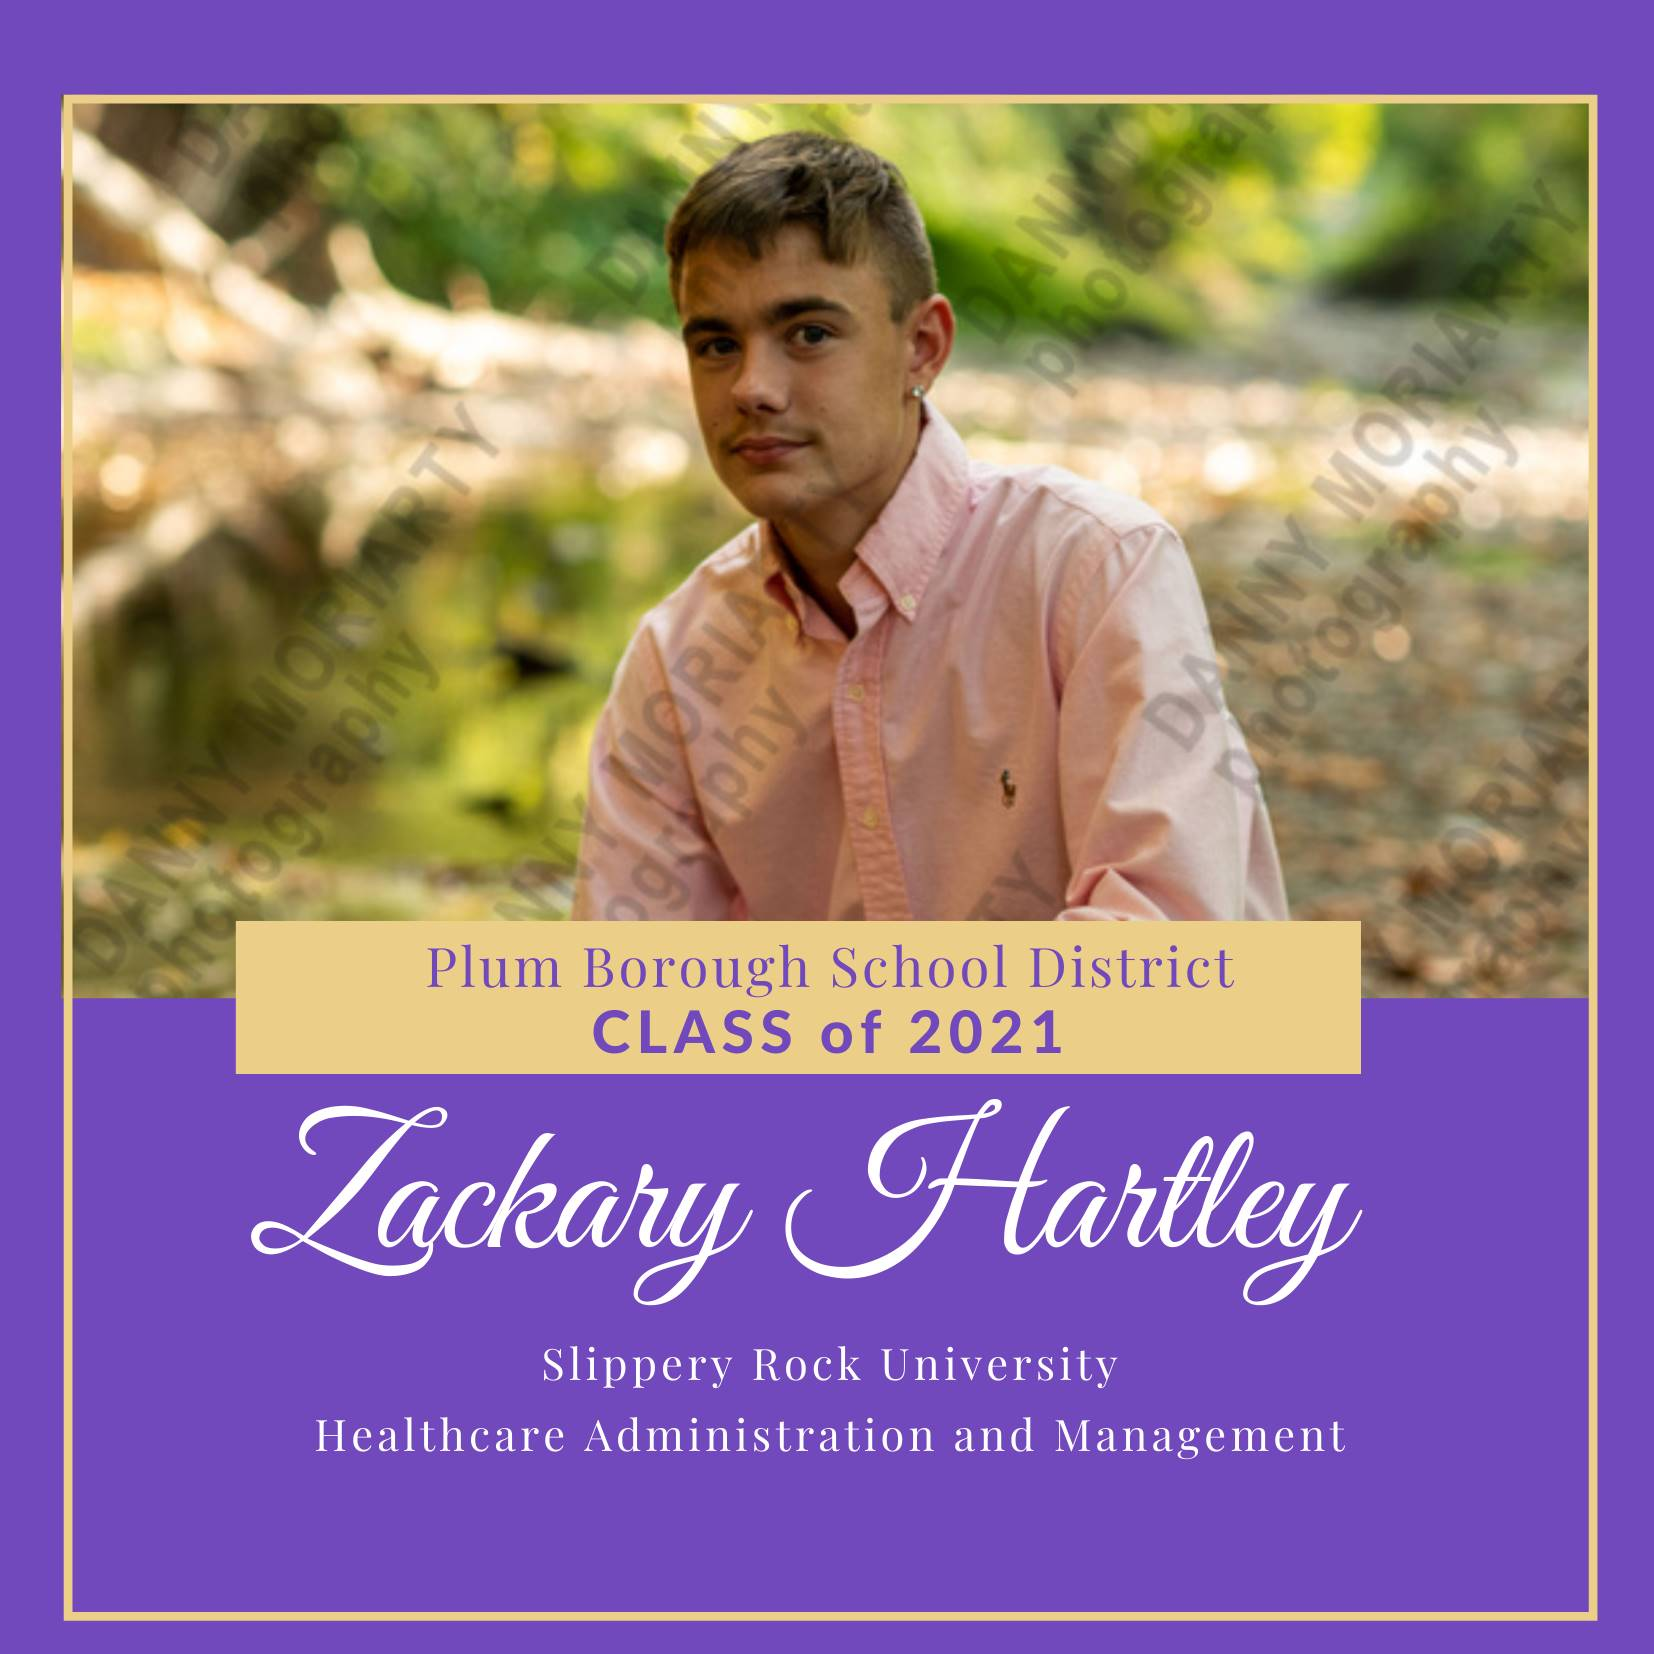 Congratulations to Zachary Hartley, Class of 2021!